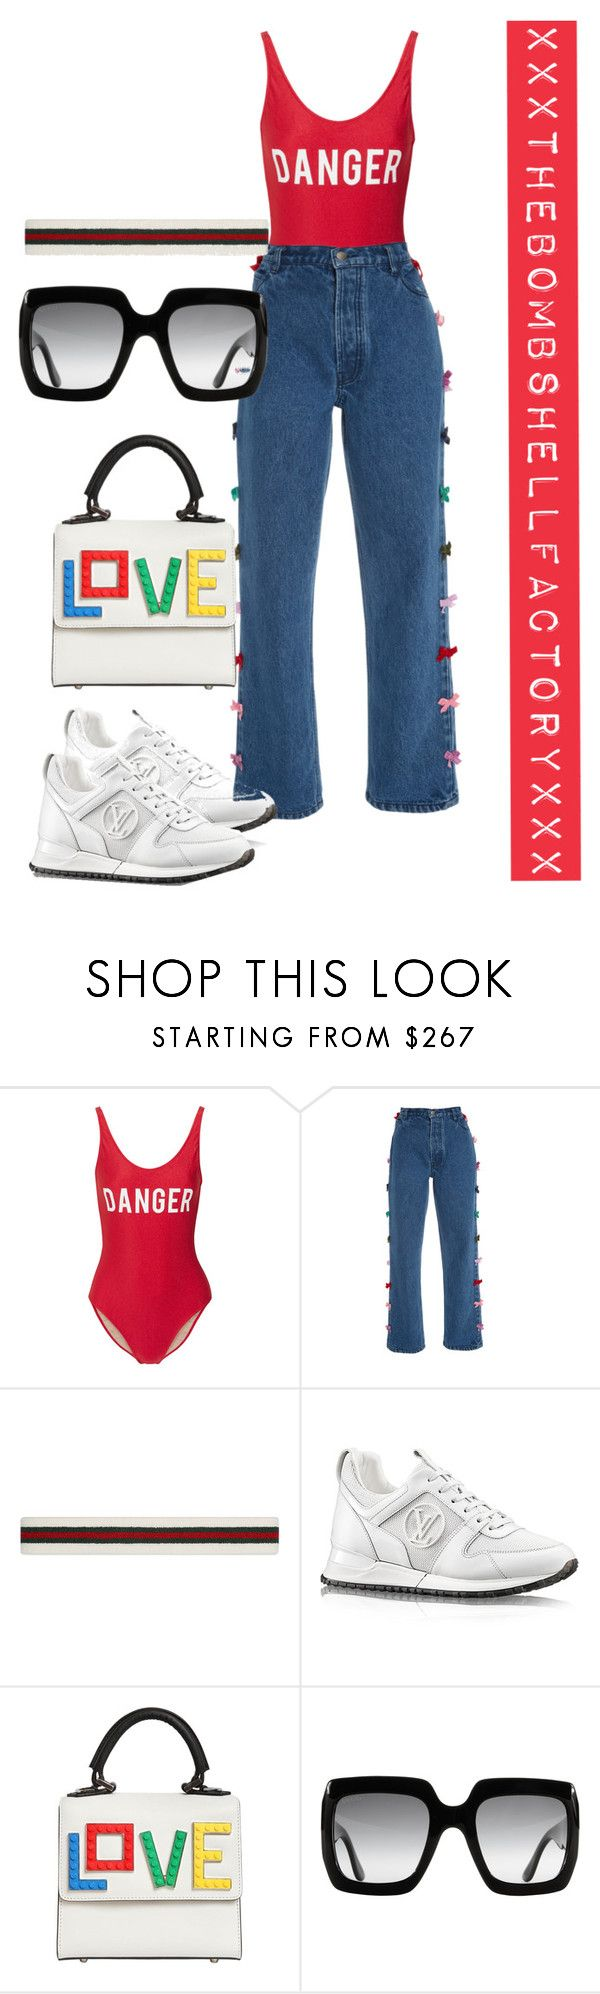 """""""the road to 1 million views: dangerously in love"""" by xxxthebombshellfactoryxxx ❤ liked on Polyvore featuring ADRIANA DEGREAS, Gucci and Les Petits Joueurs"""